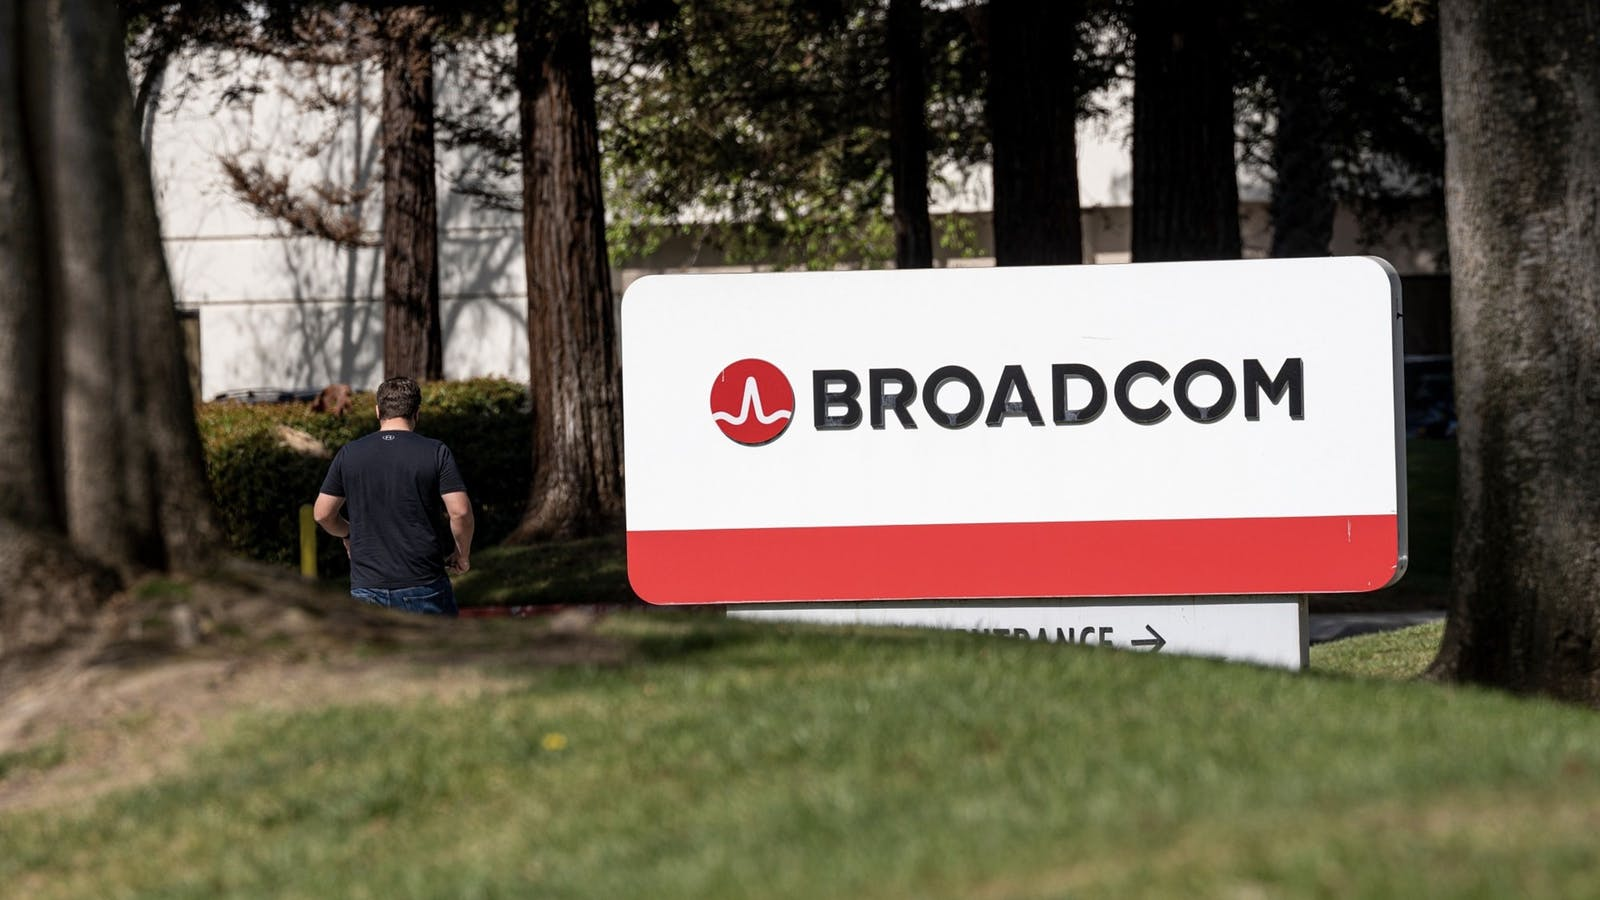 Broadcom's Silicon Valley headquarters. Photo by Bloomberg